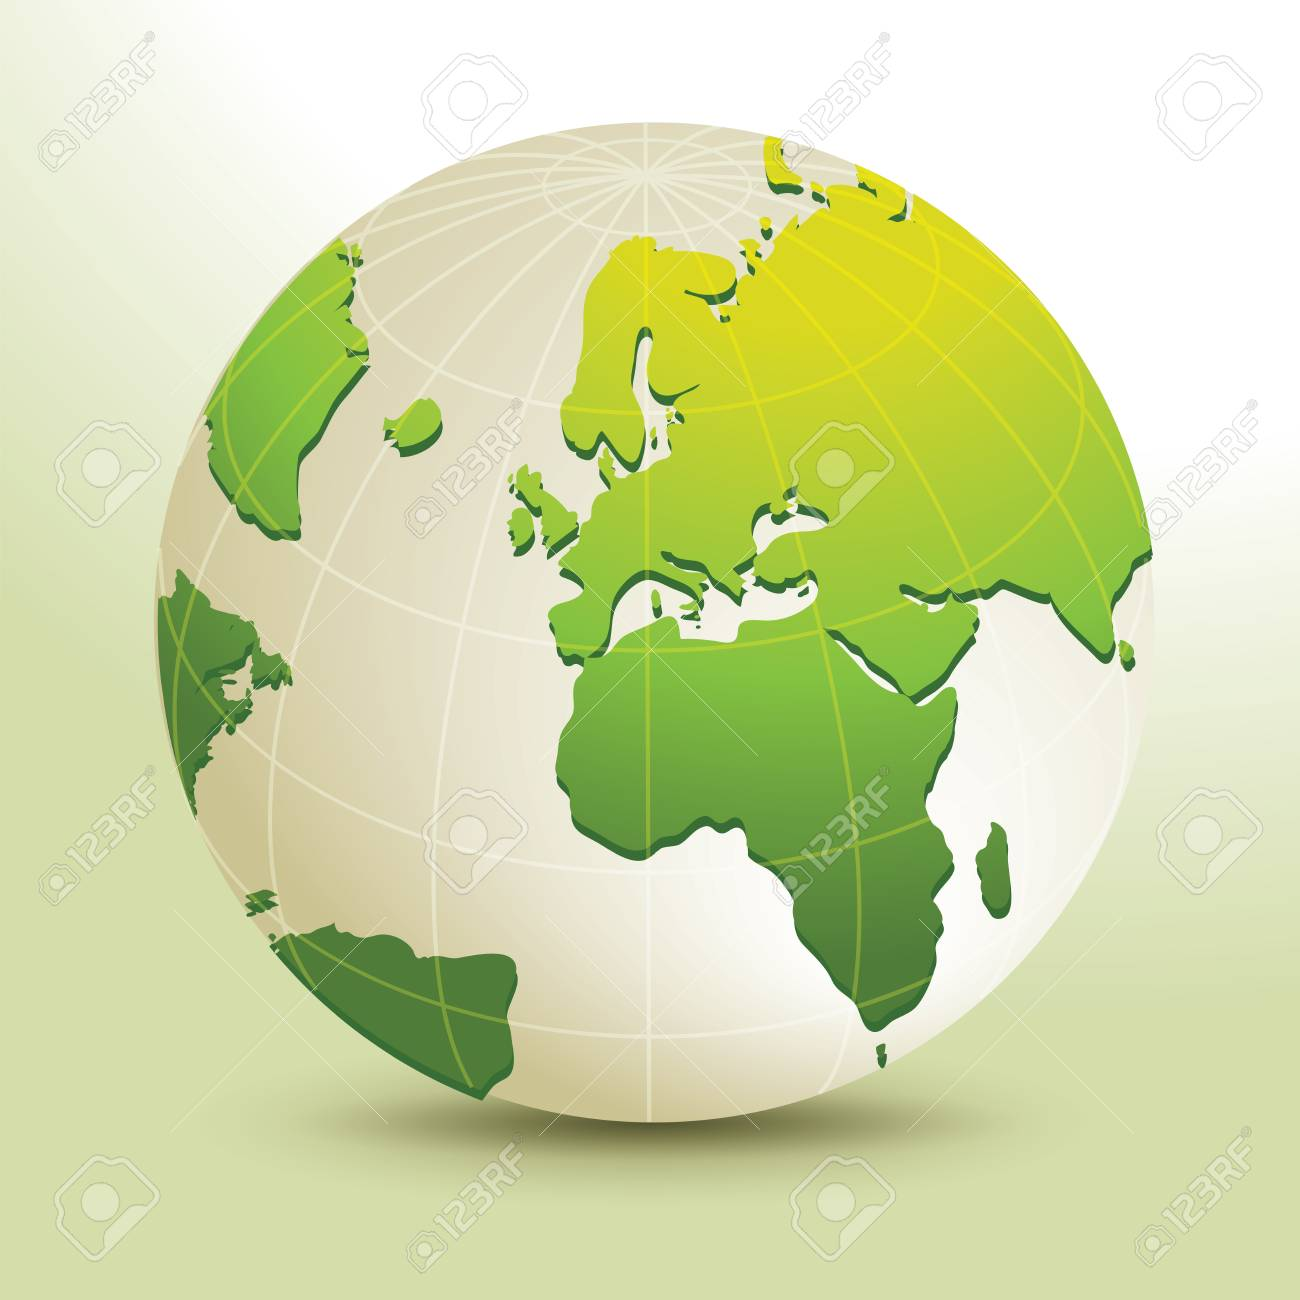 Global, Vector illustration of Global map in Africa, Middle East..